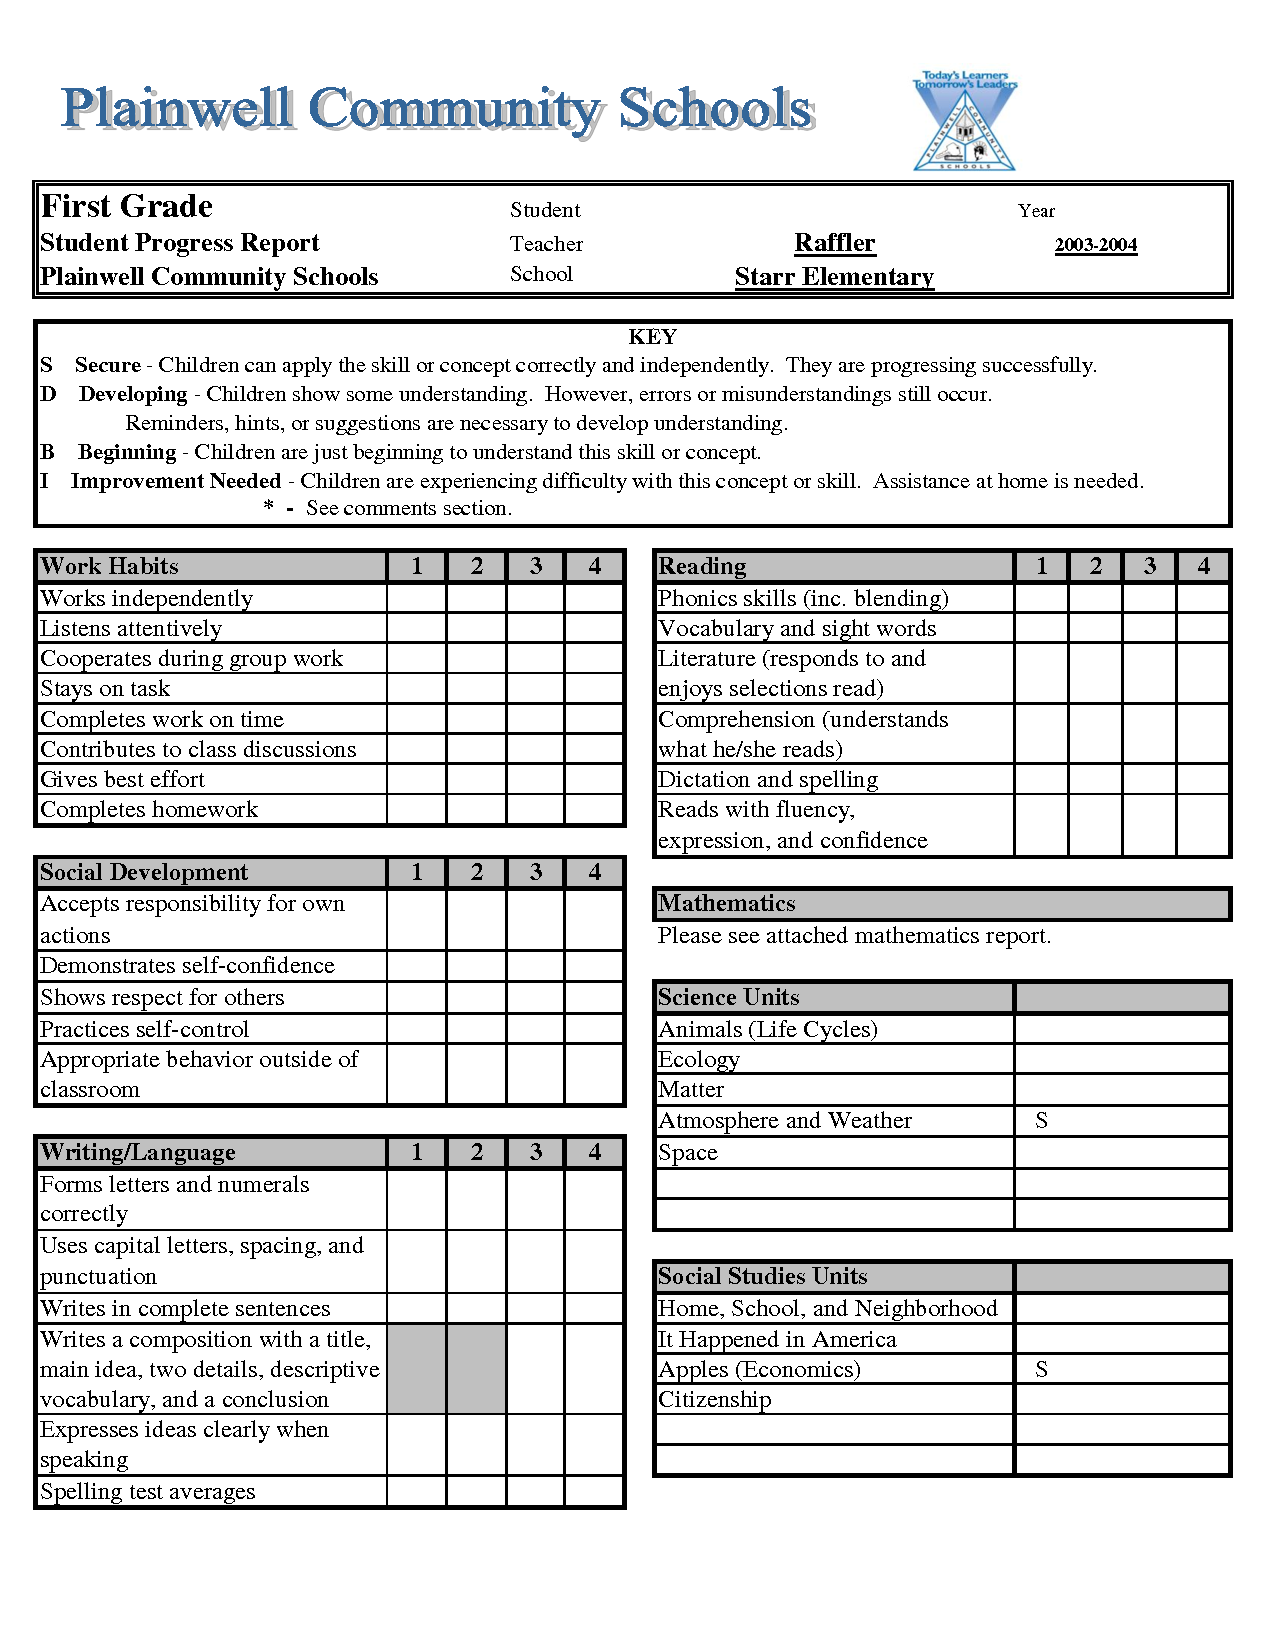 Report Card Template - Excel.xls Download legal documents Report ...